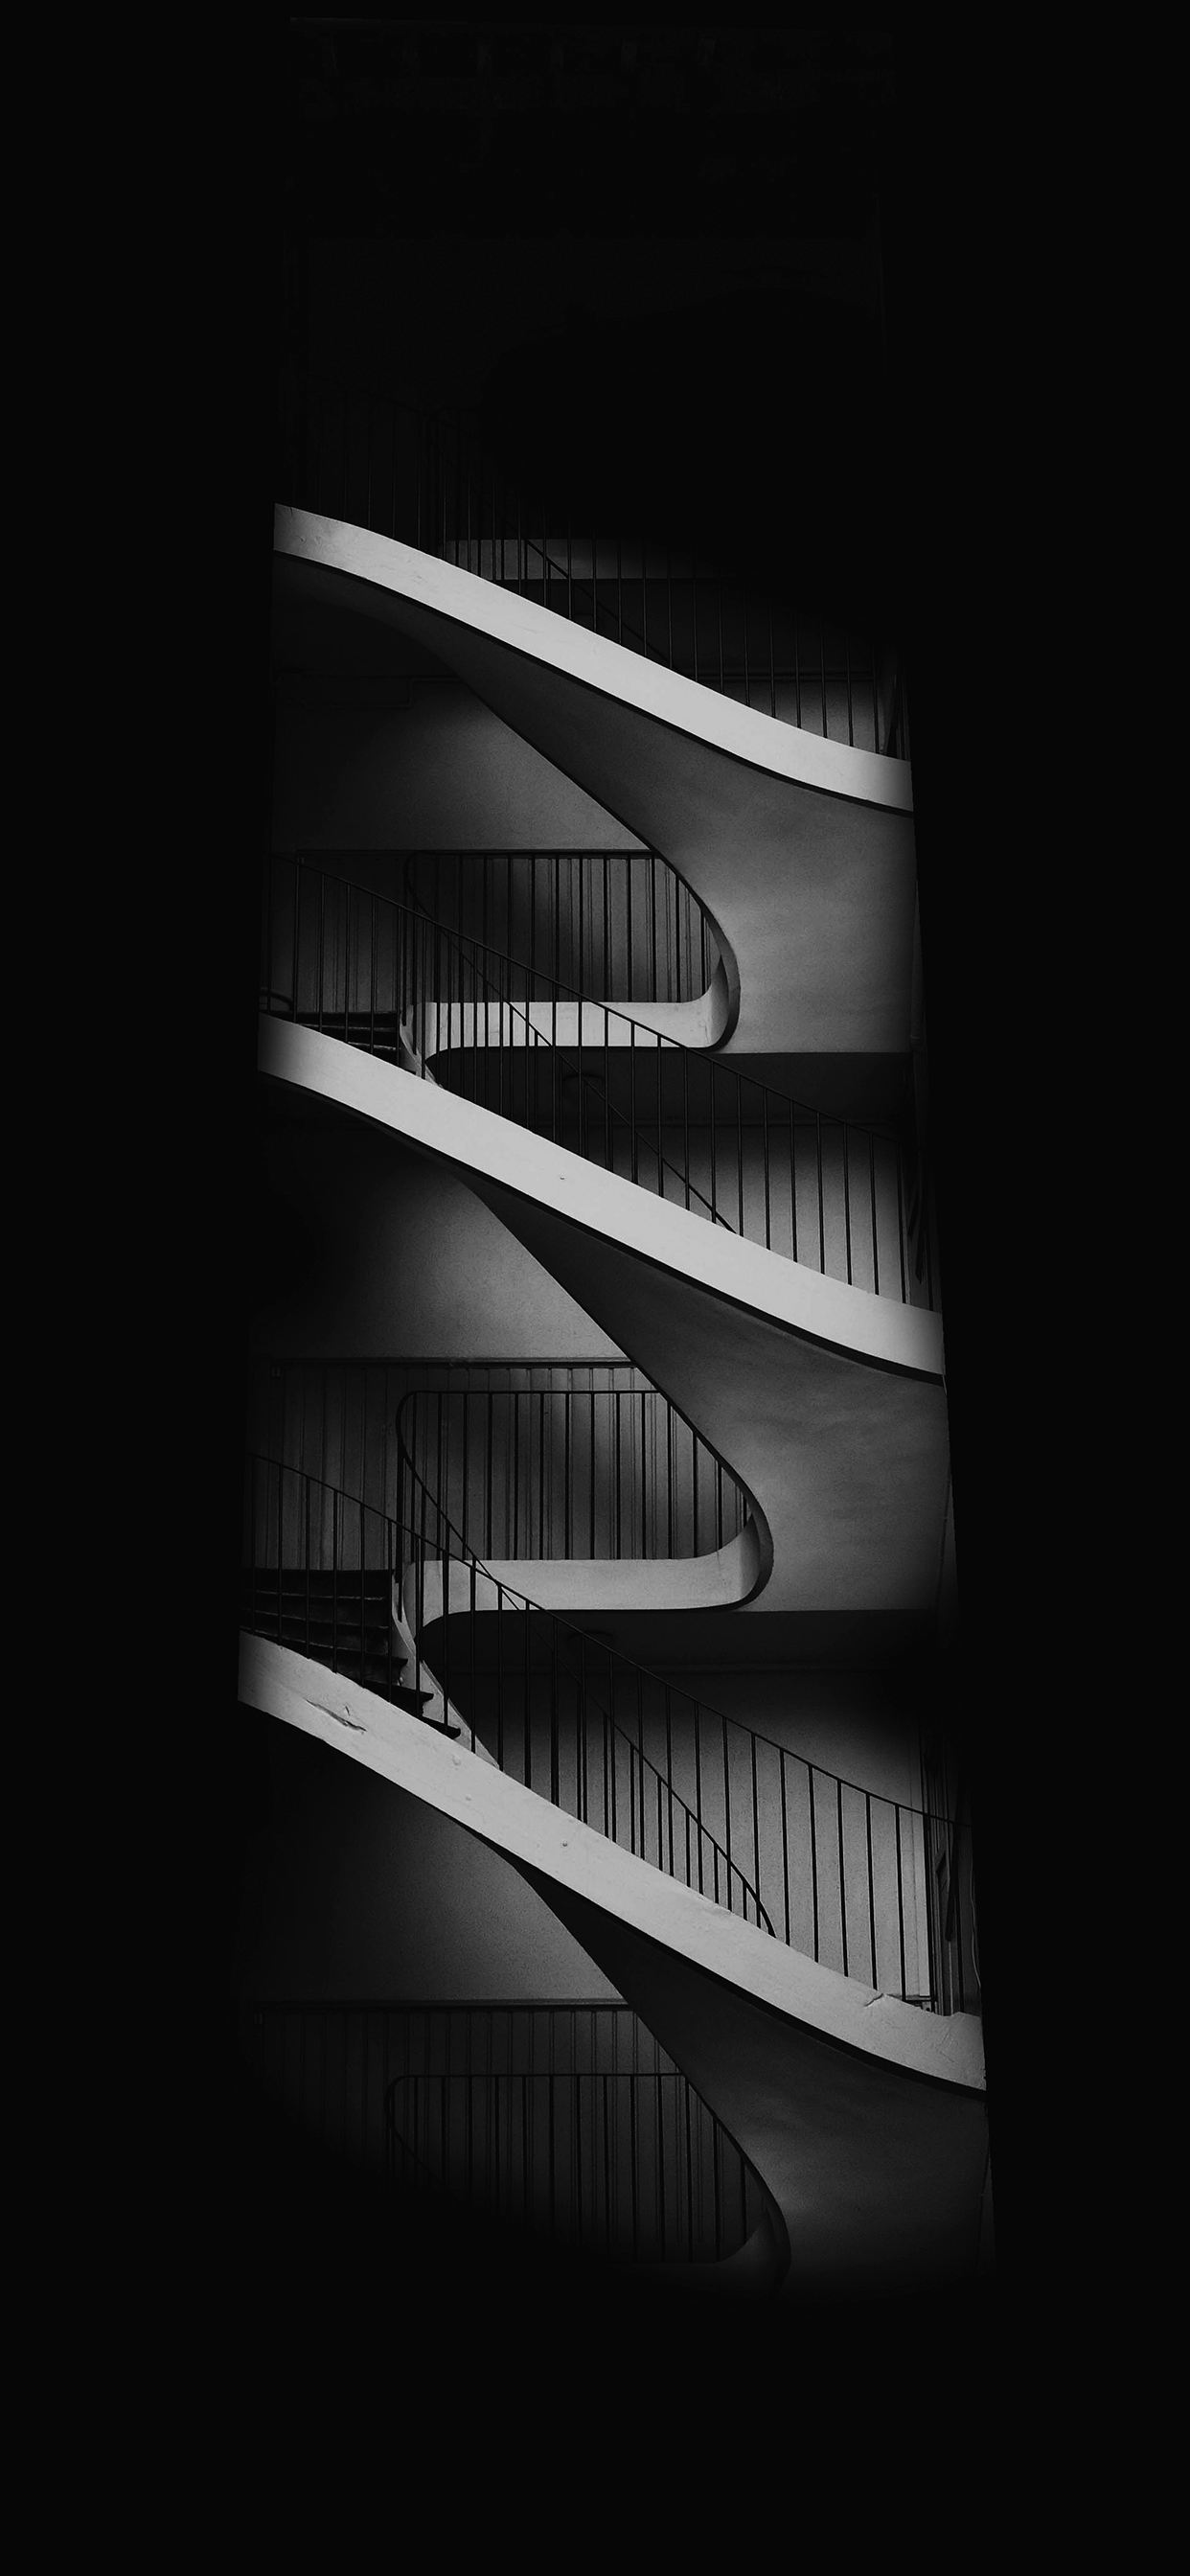 iPhone wallpapers dark stairs Fonds d'écran iPhone du 12/06/2019